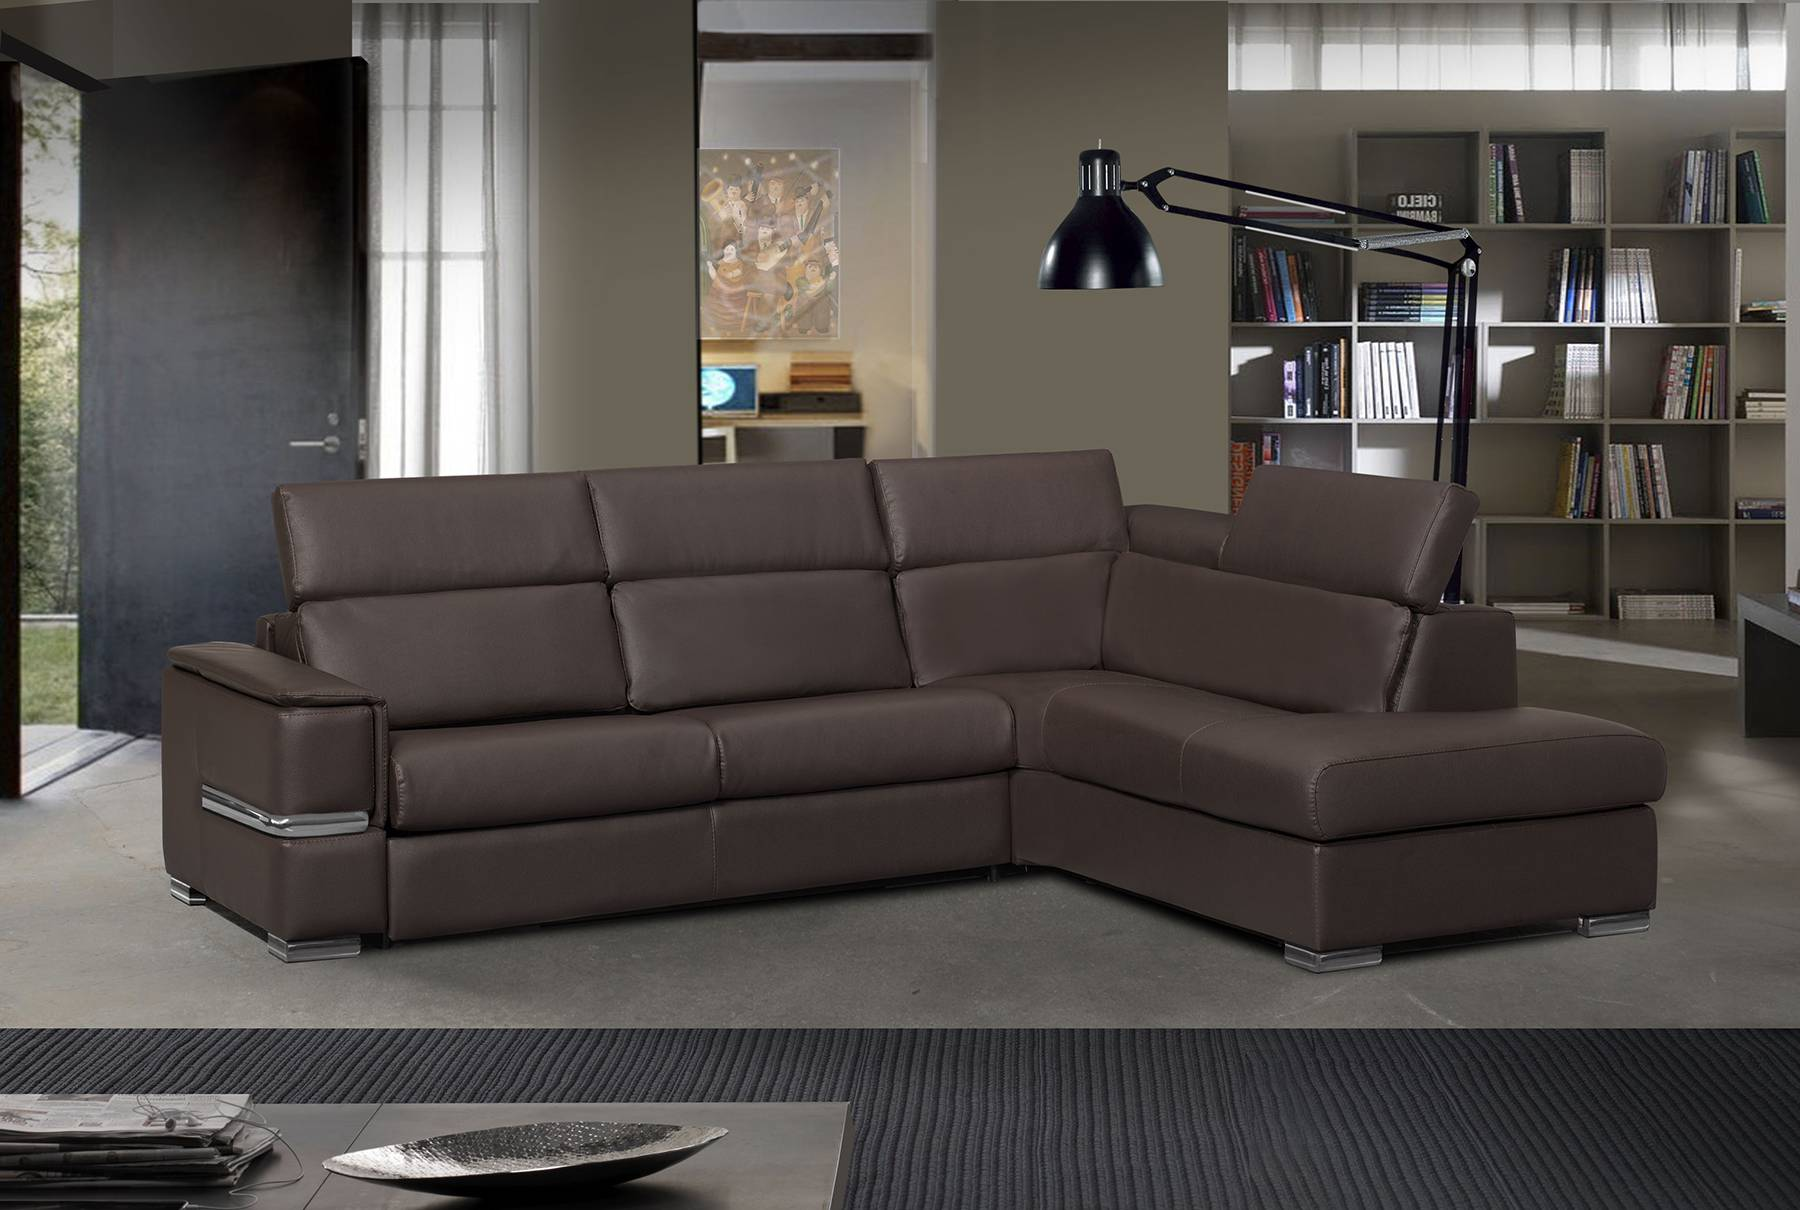 Brown Leather Sectional Sofa With Fold Out Sleeper